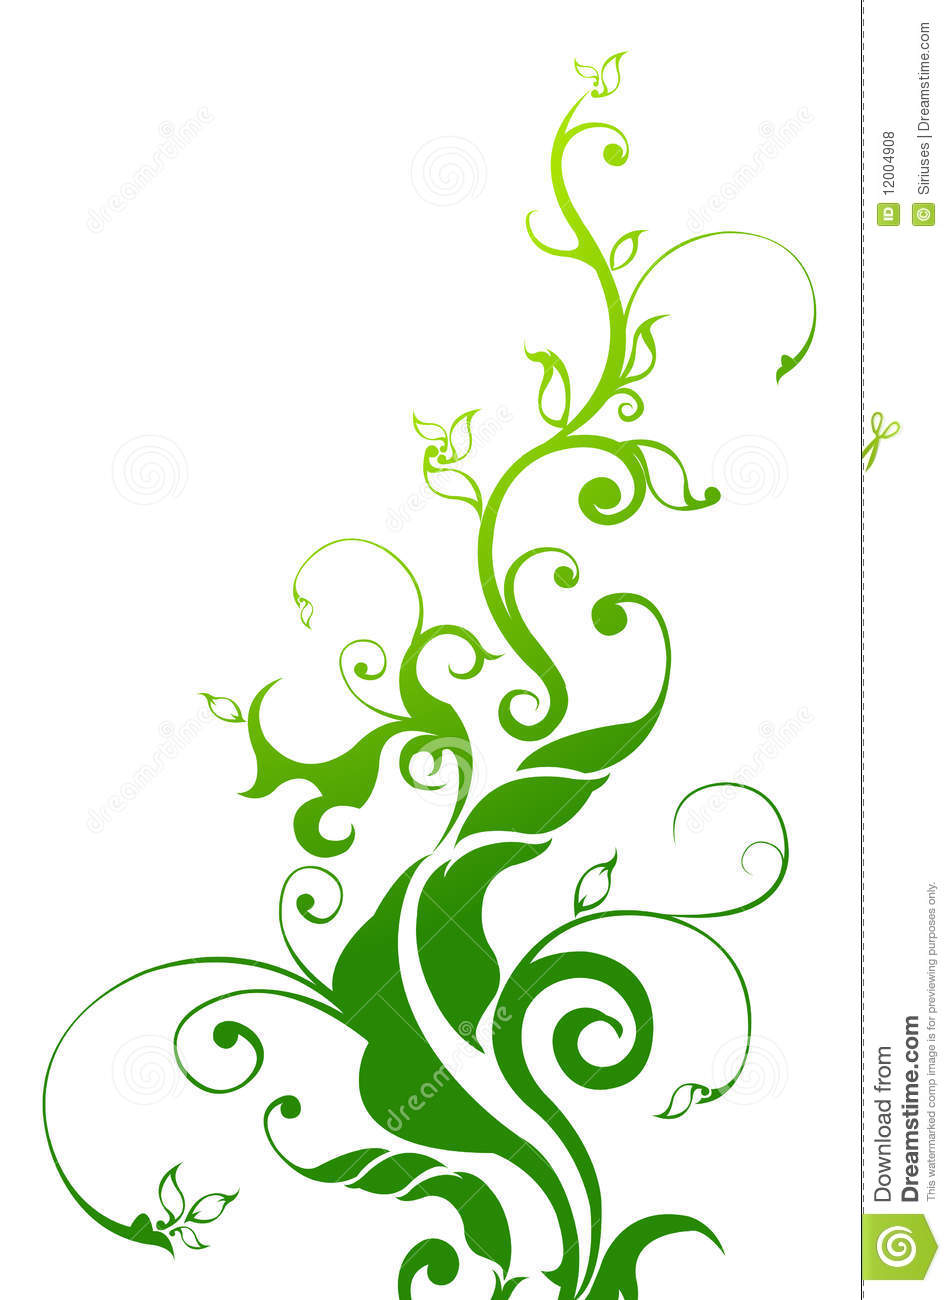 Green Vine Drawing Drawing of green tree and vine